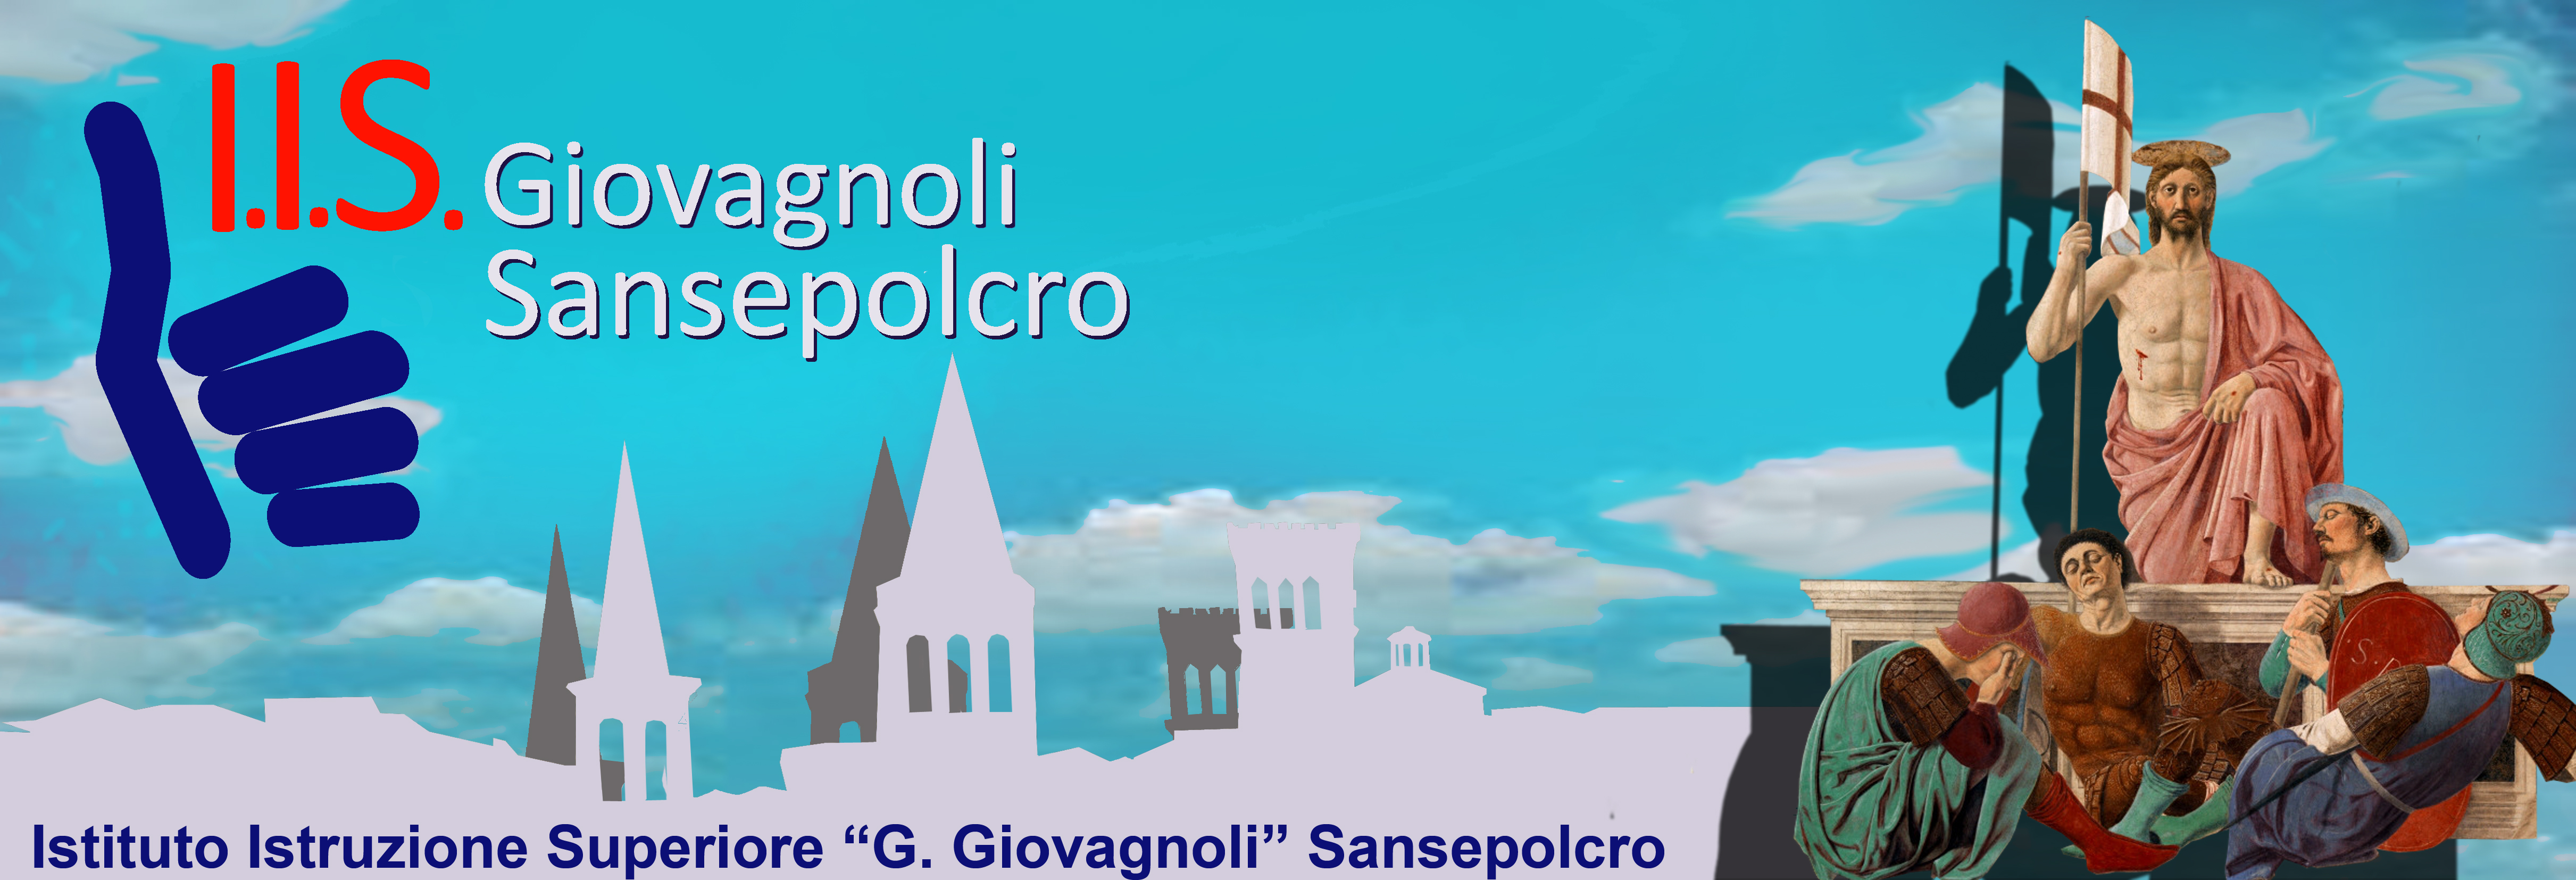 is giovagnoli